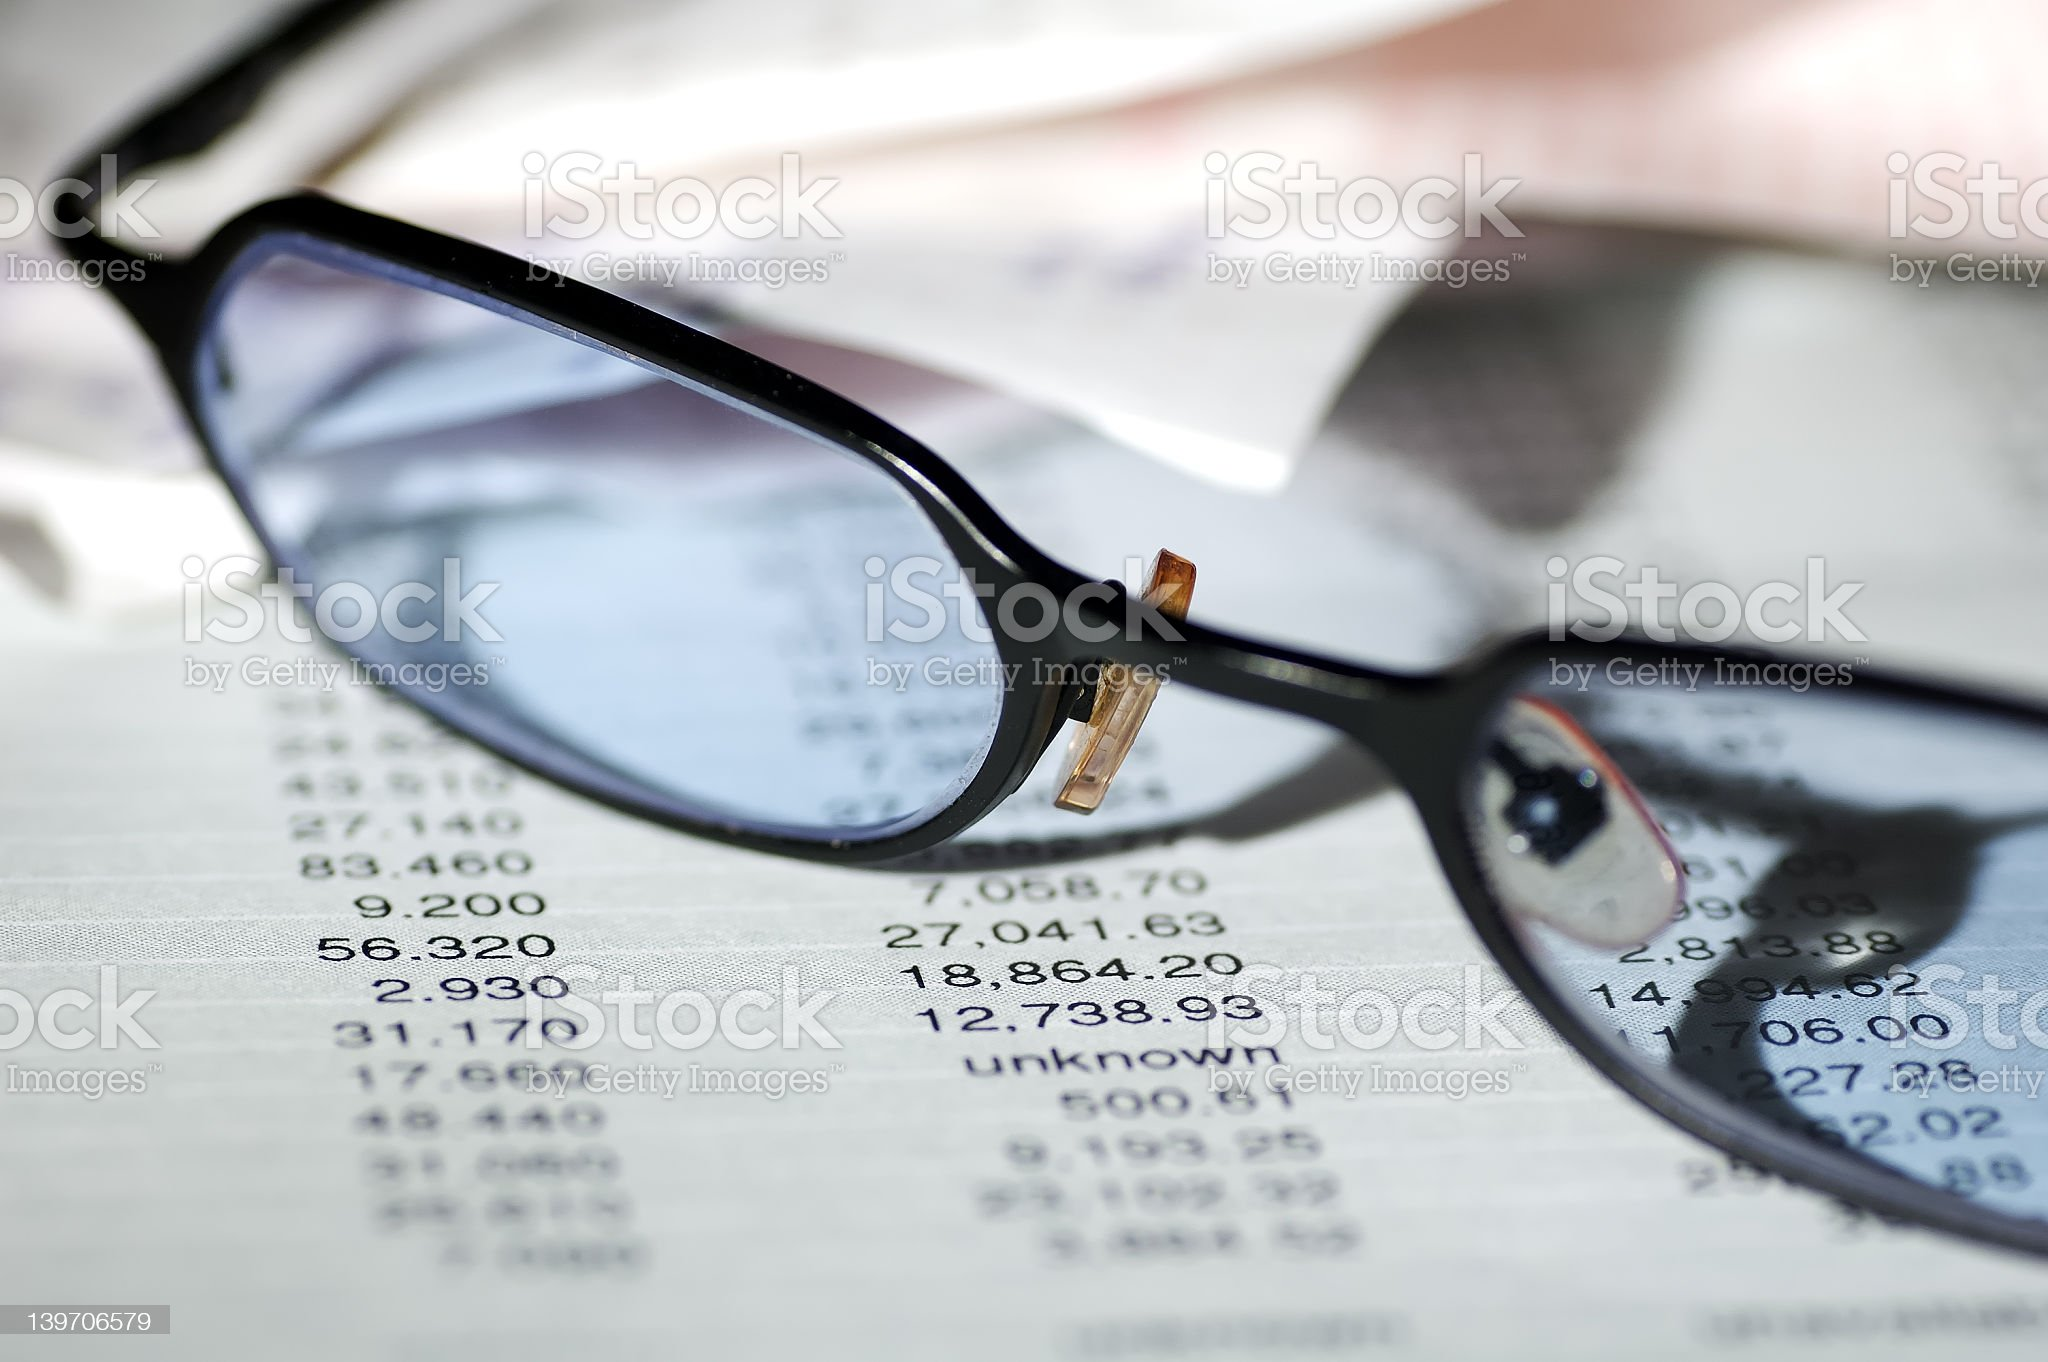 Pair of reading glasses resting on financial papers royalty-free stock photo